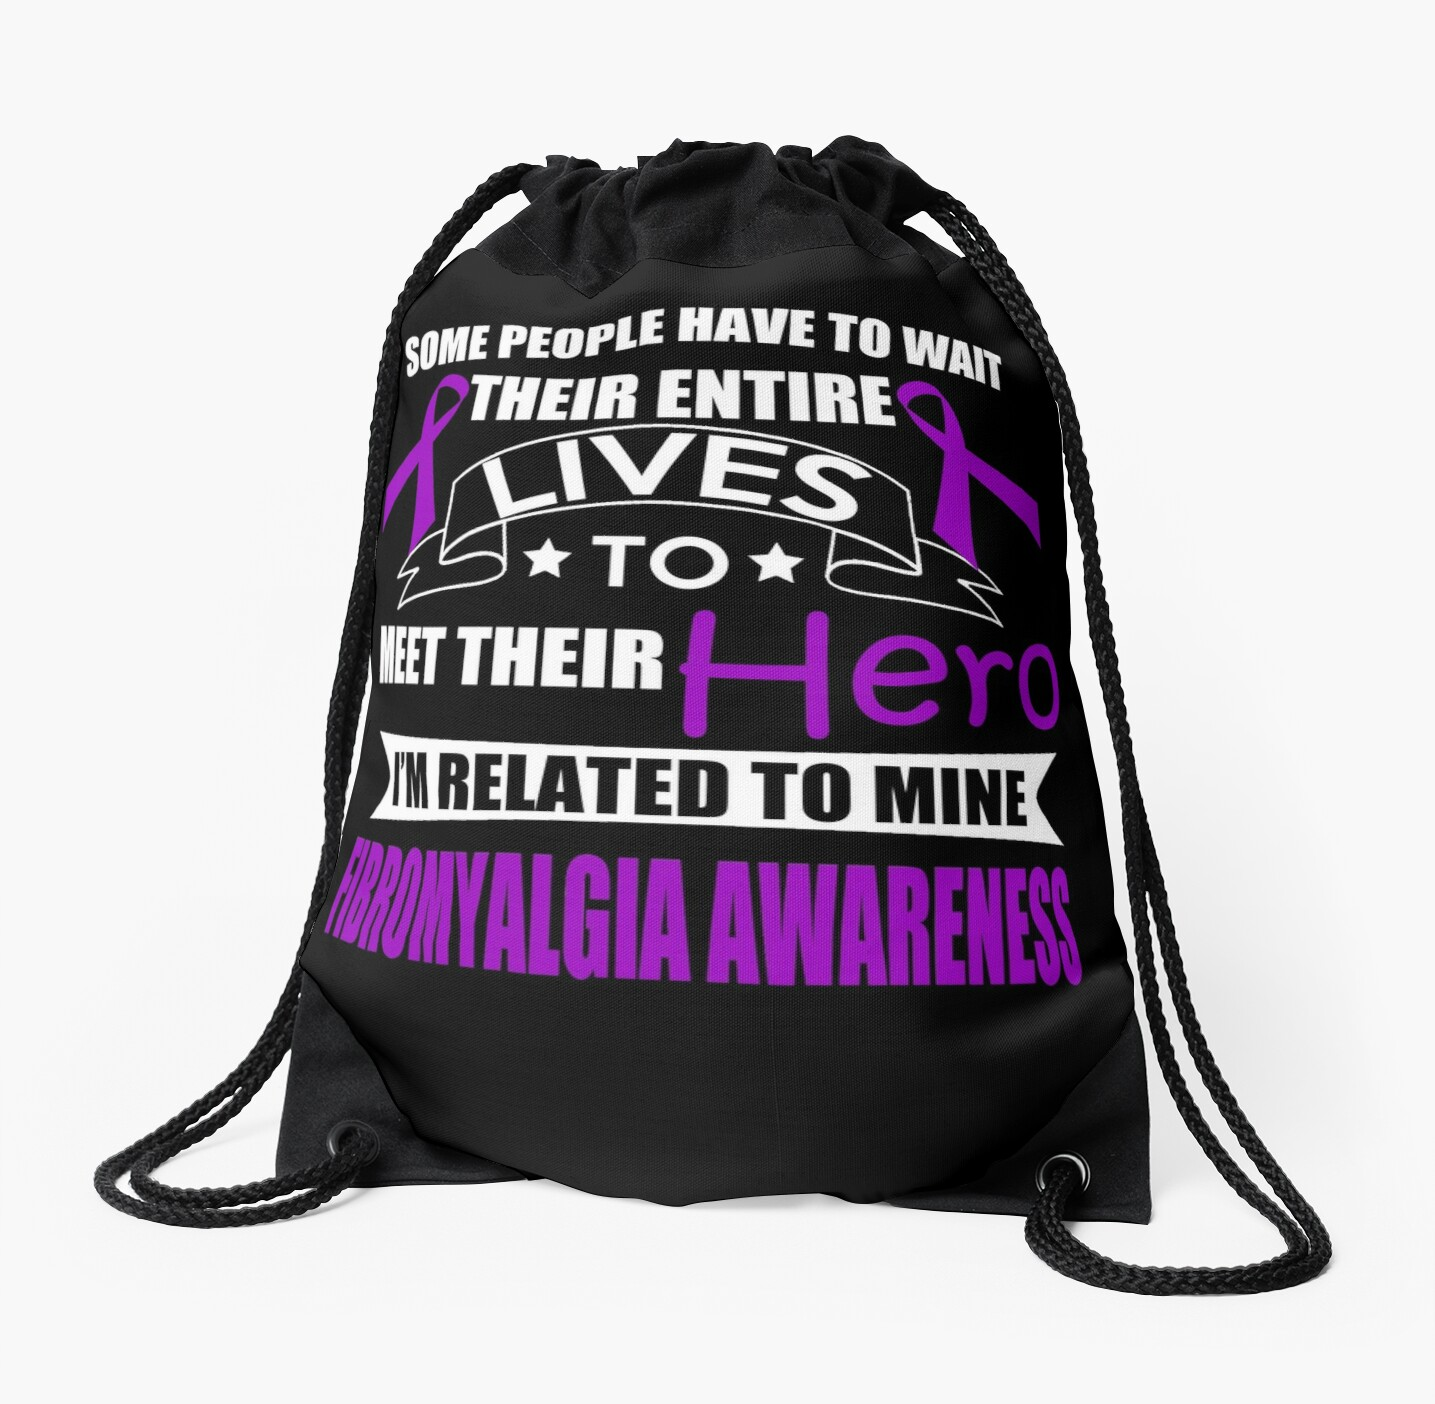 Related to my Hero! Family Fibromyalgia Awareness by AwarenessMerch